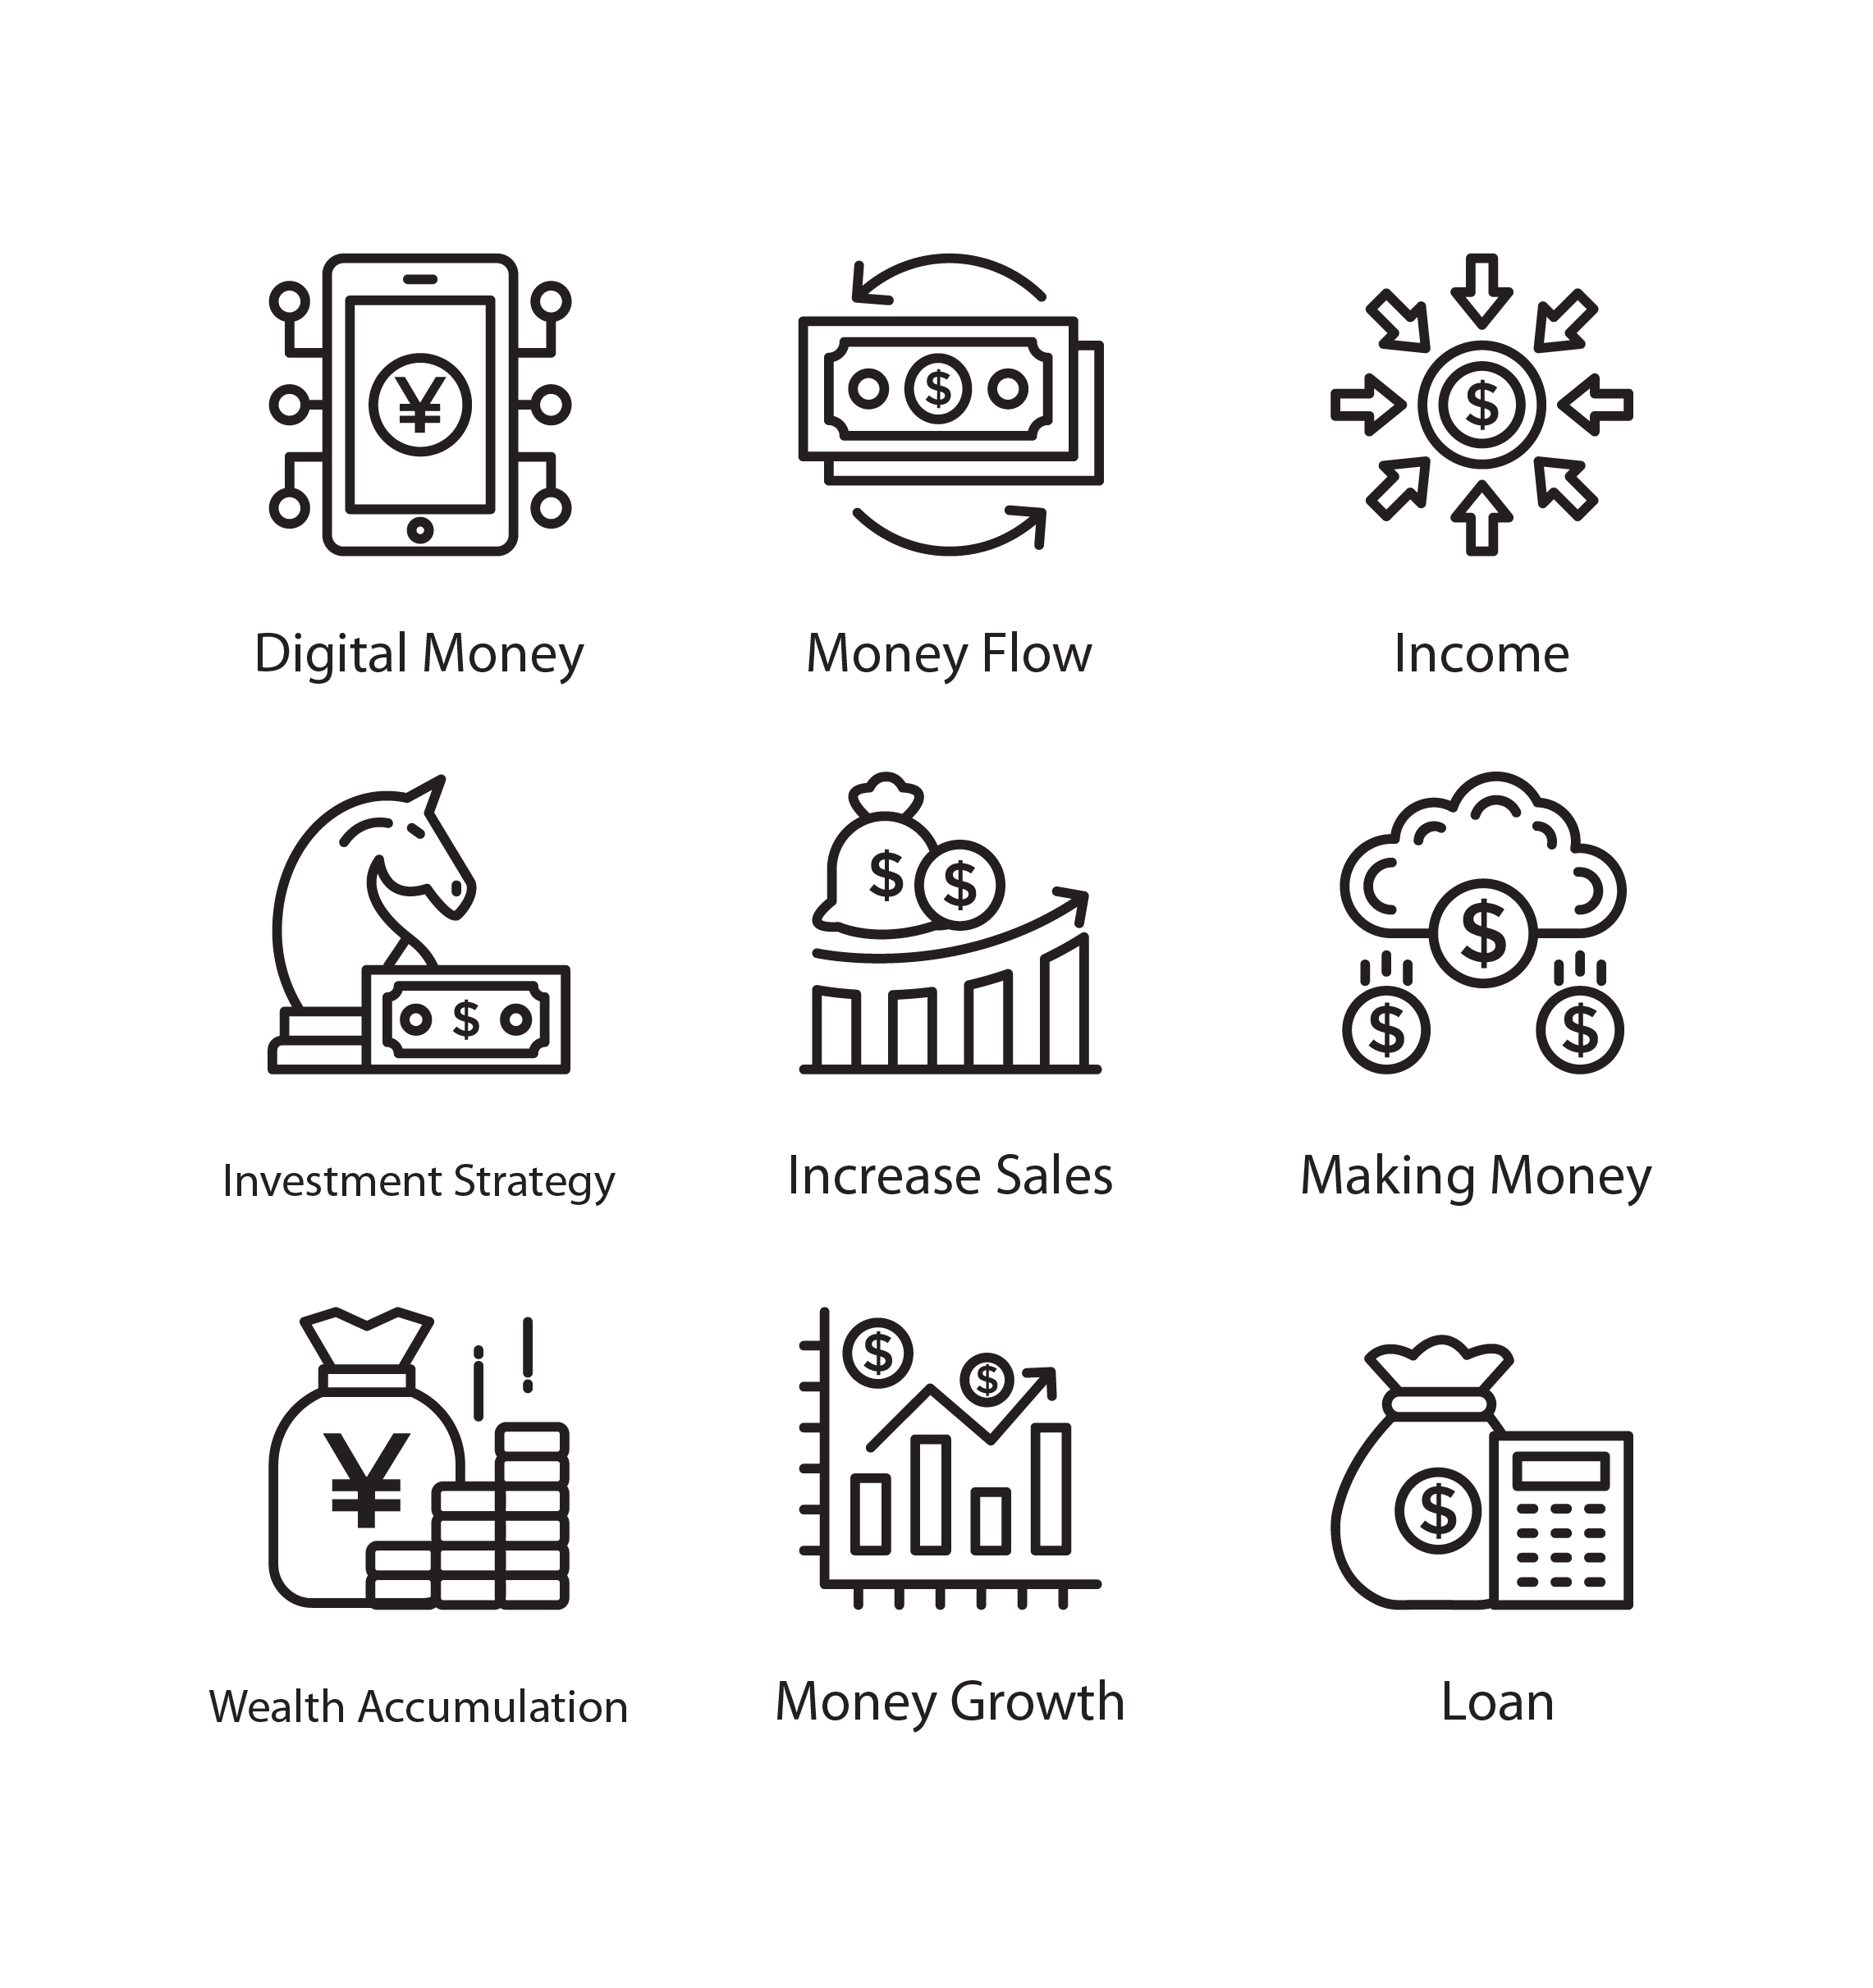 Cashflow Free Icons for Download